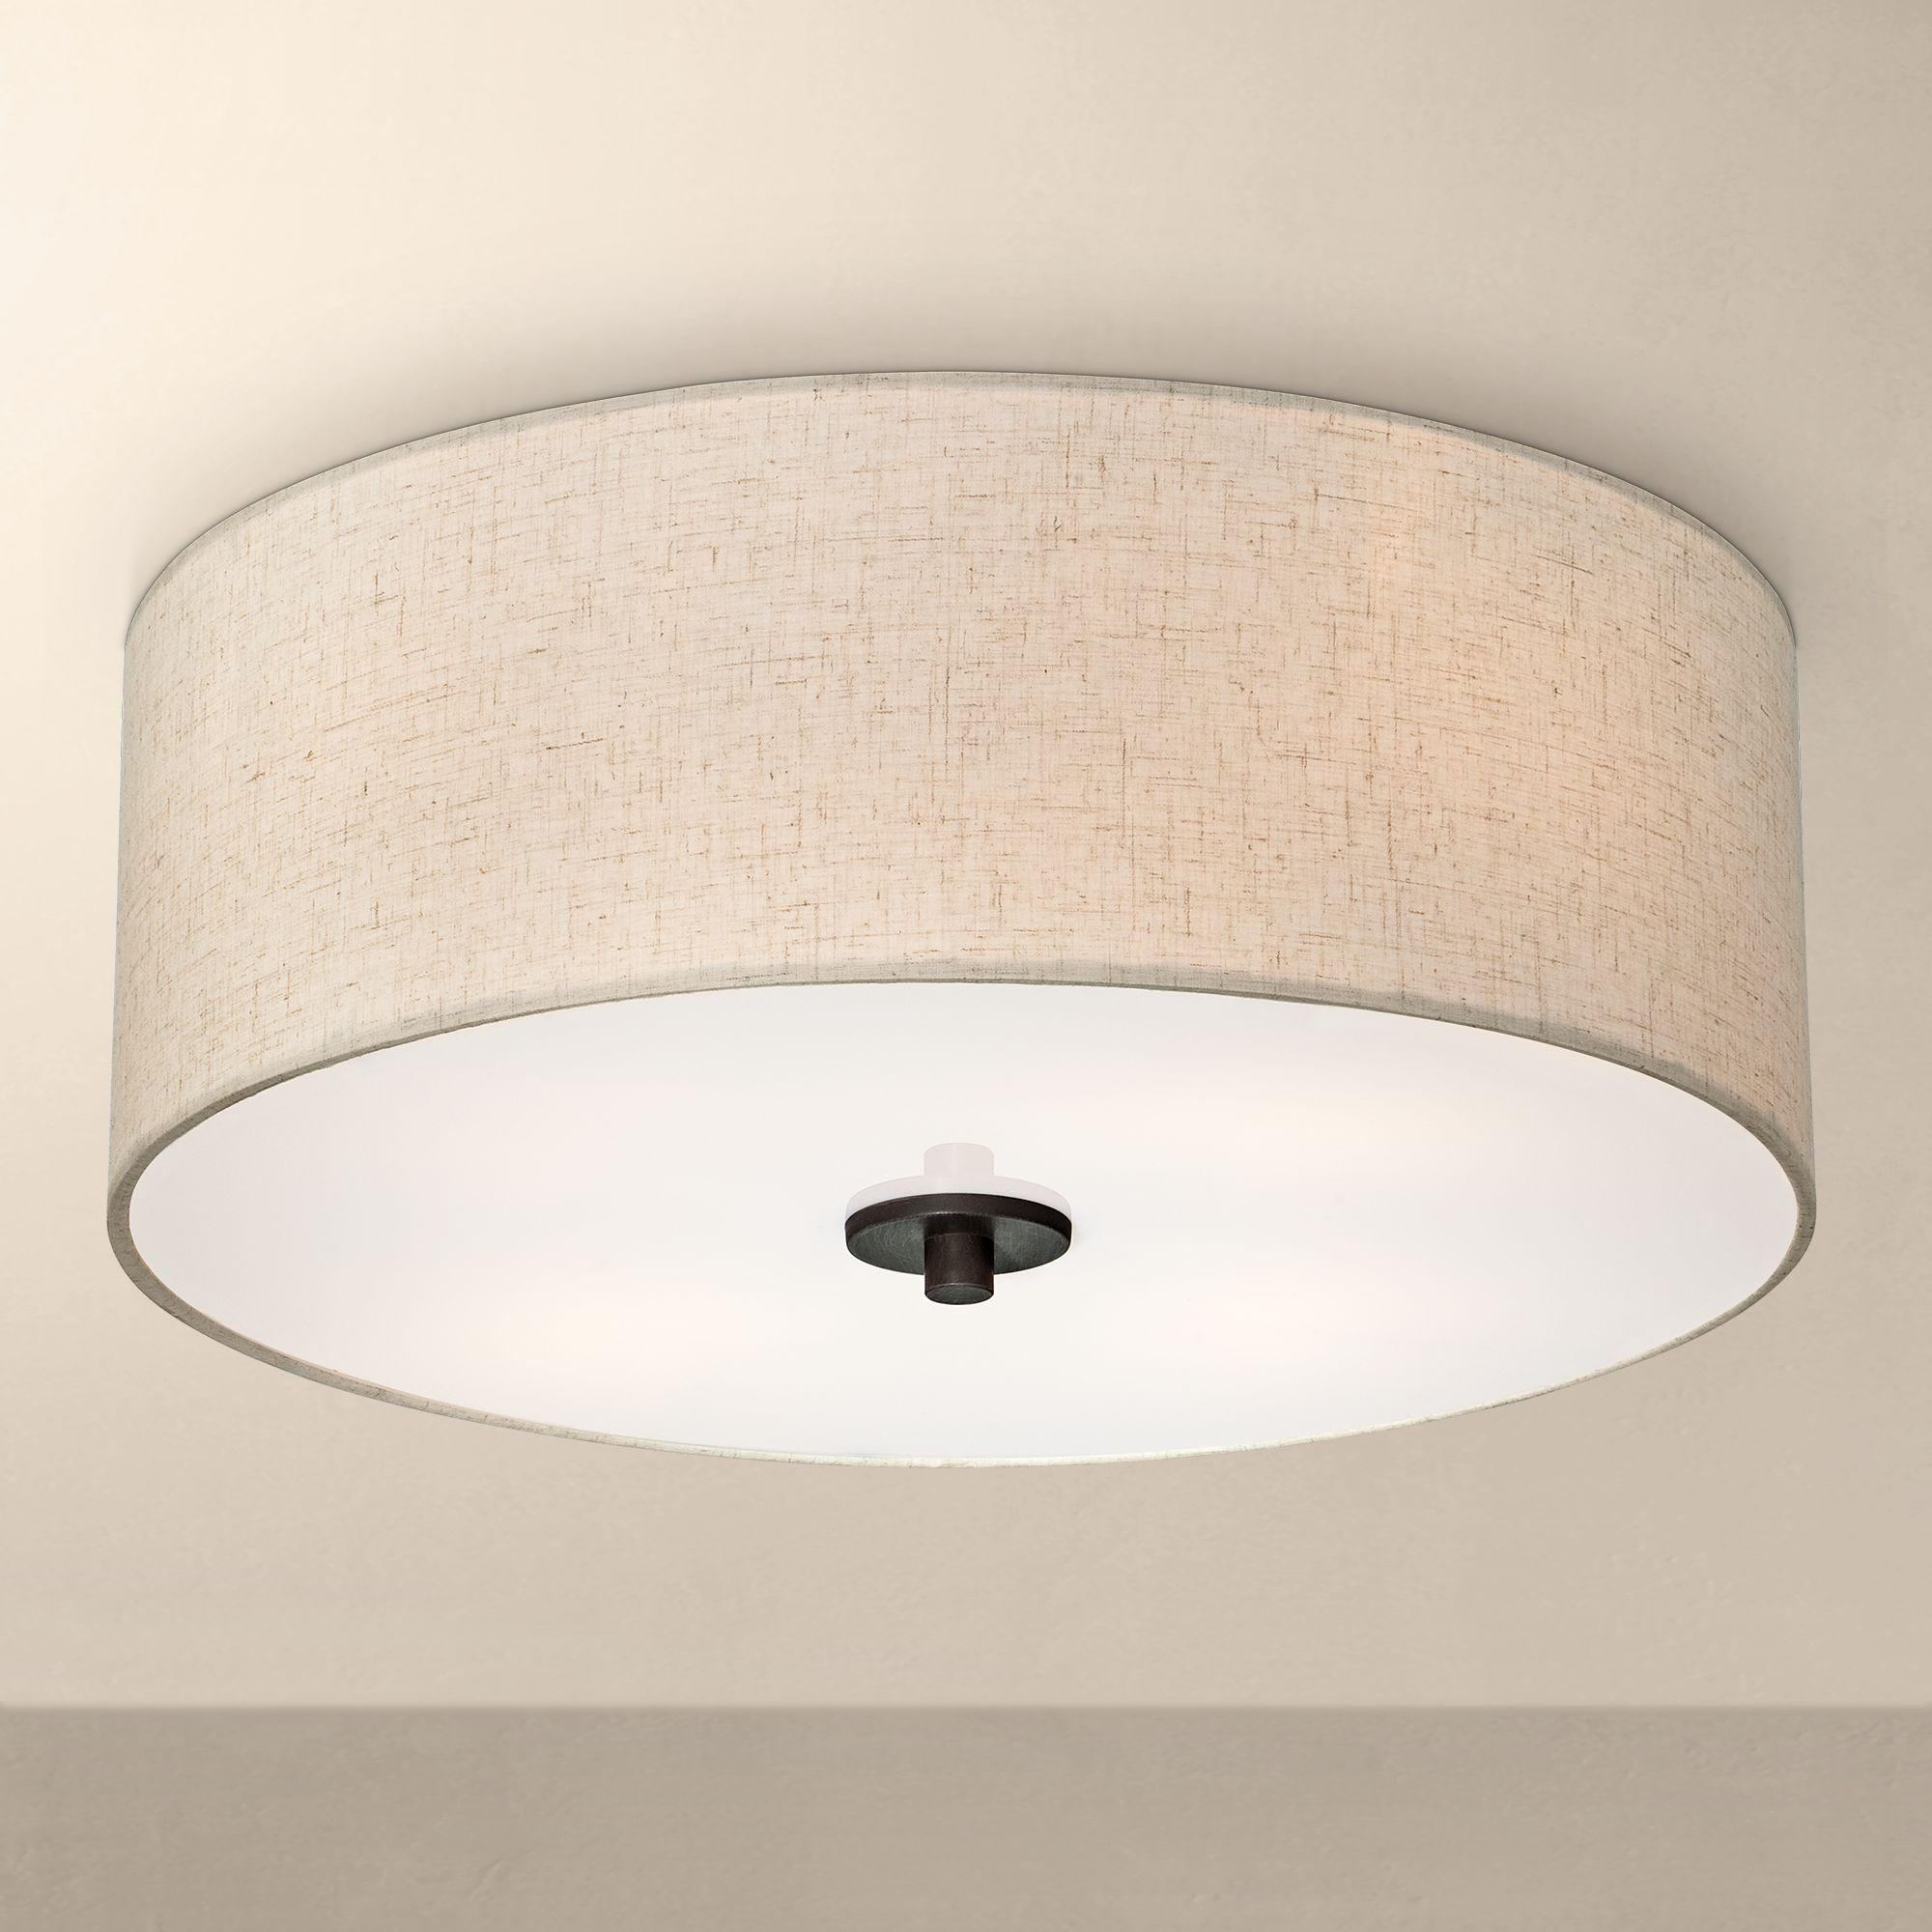 Creative flush mount ceiling light bronze with off white shade 18 ppxzalu